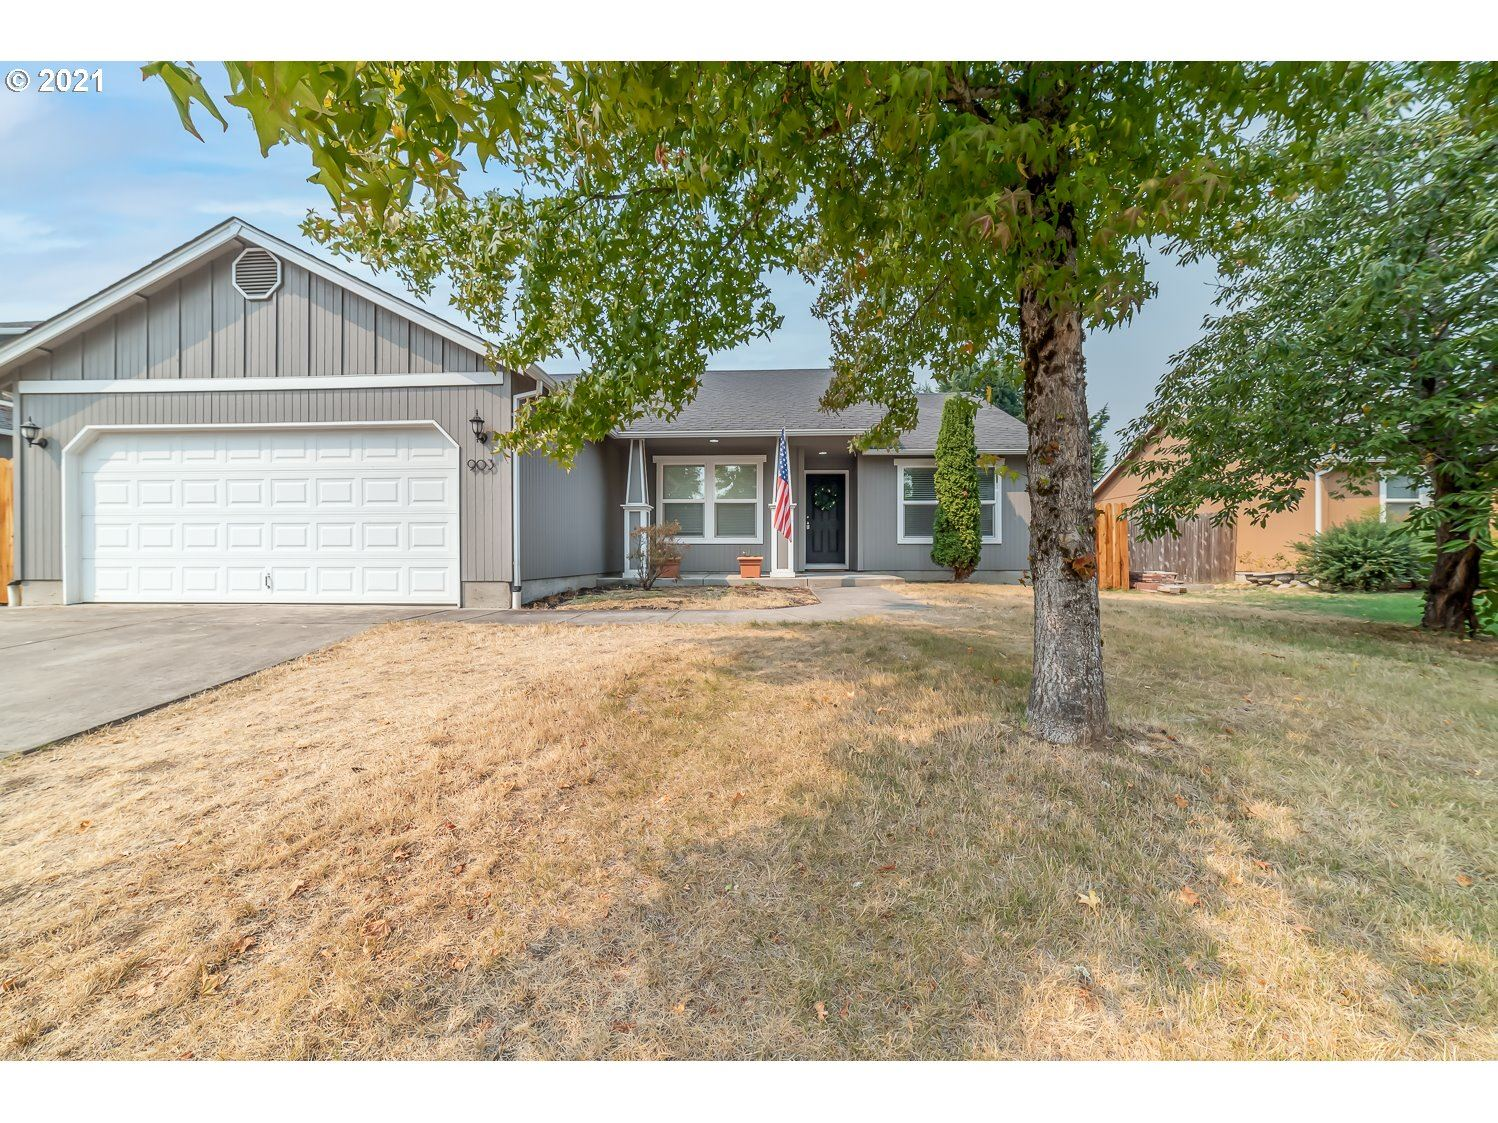 Photo for 903 N 1ST ST, Creswell, OR 97426 (MLS # 21319252)